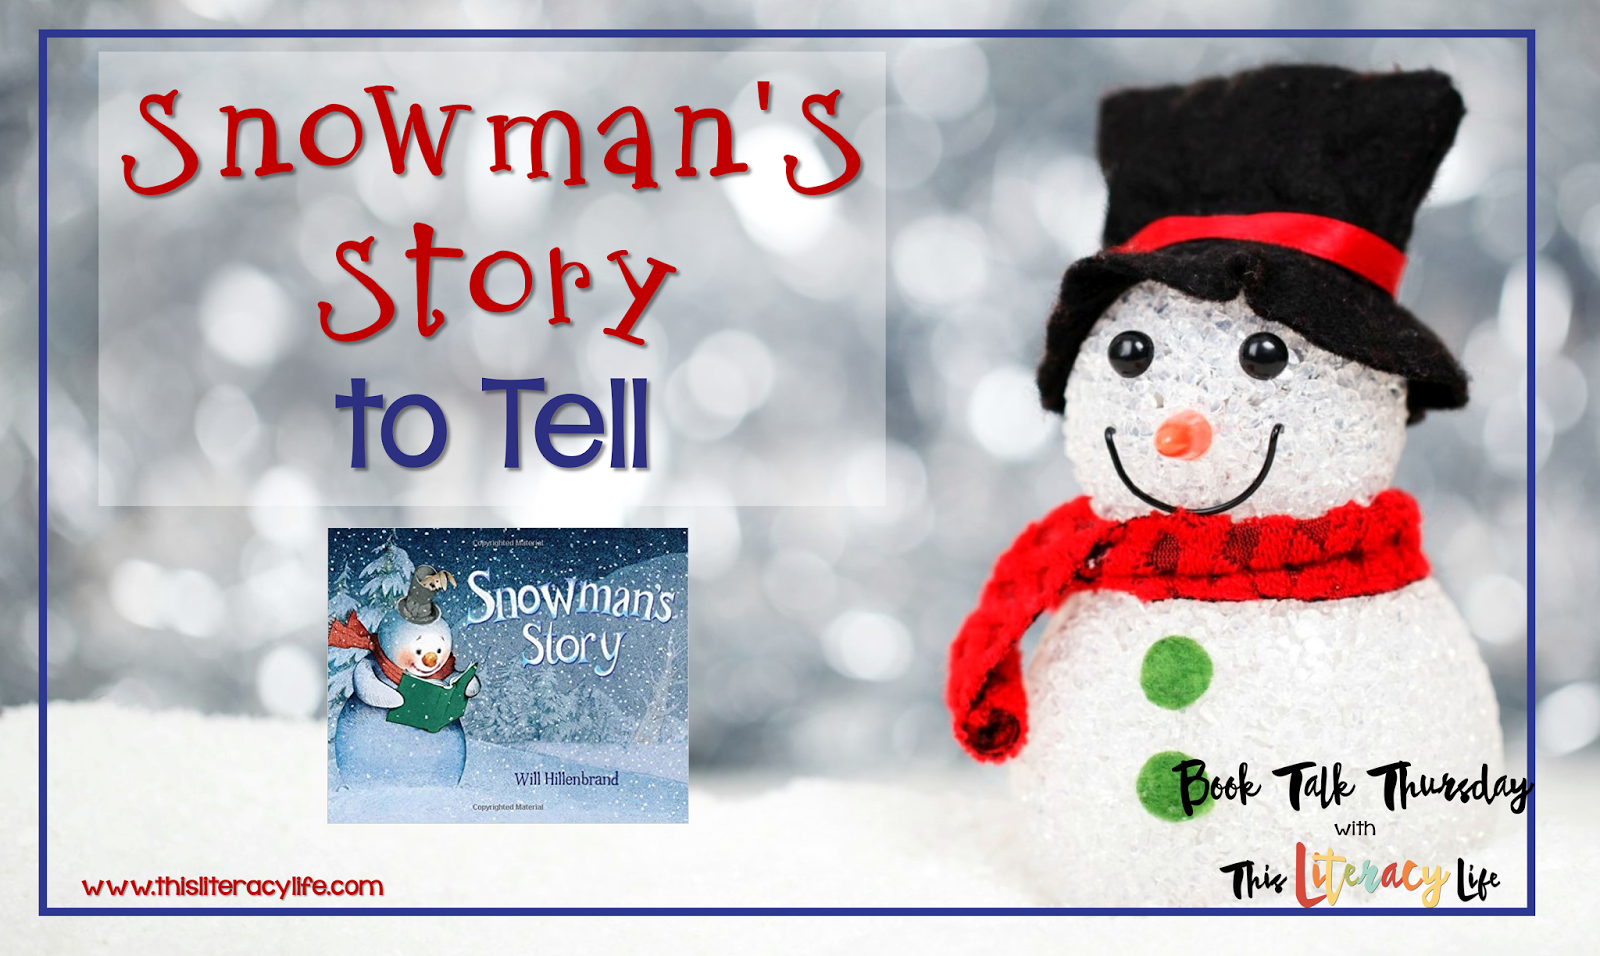 Wordless picture books are perfect for helping students with many different skills. Snowman's Story is a fun wordless picture book for students of all ages.